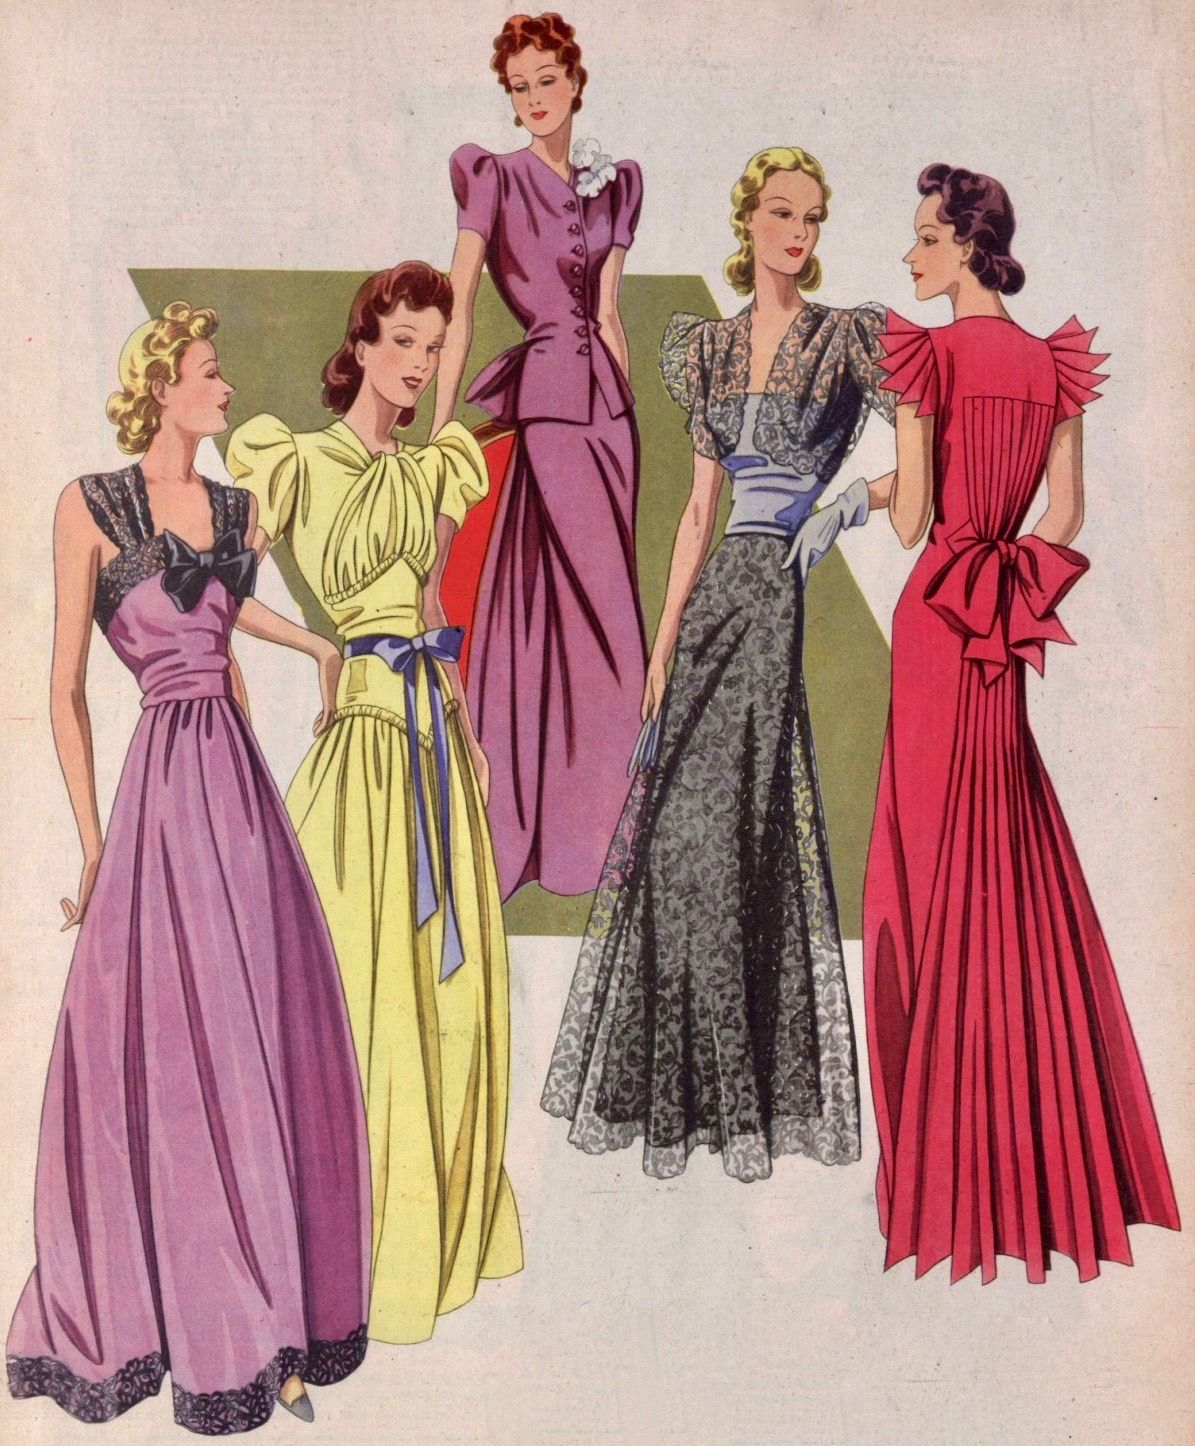 Pin By 1930s 1940s Women S Fashion On 1940s Evening Wear Fashion 1940s Fashion Evening Gowns [ 1446 x 1195 Pixel ]